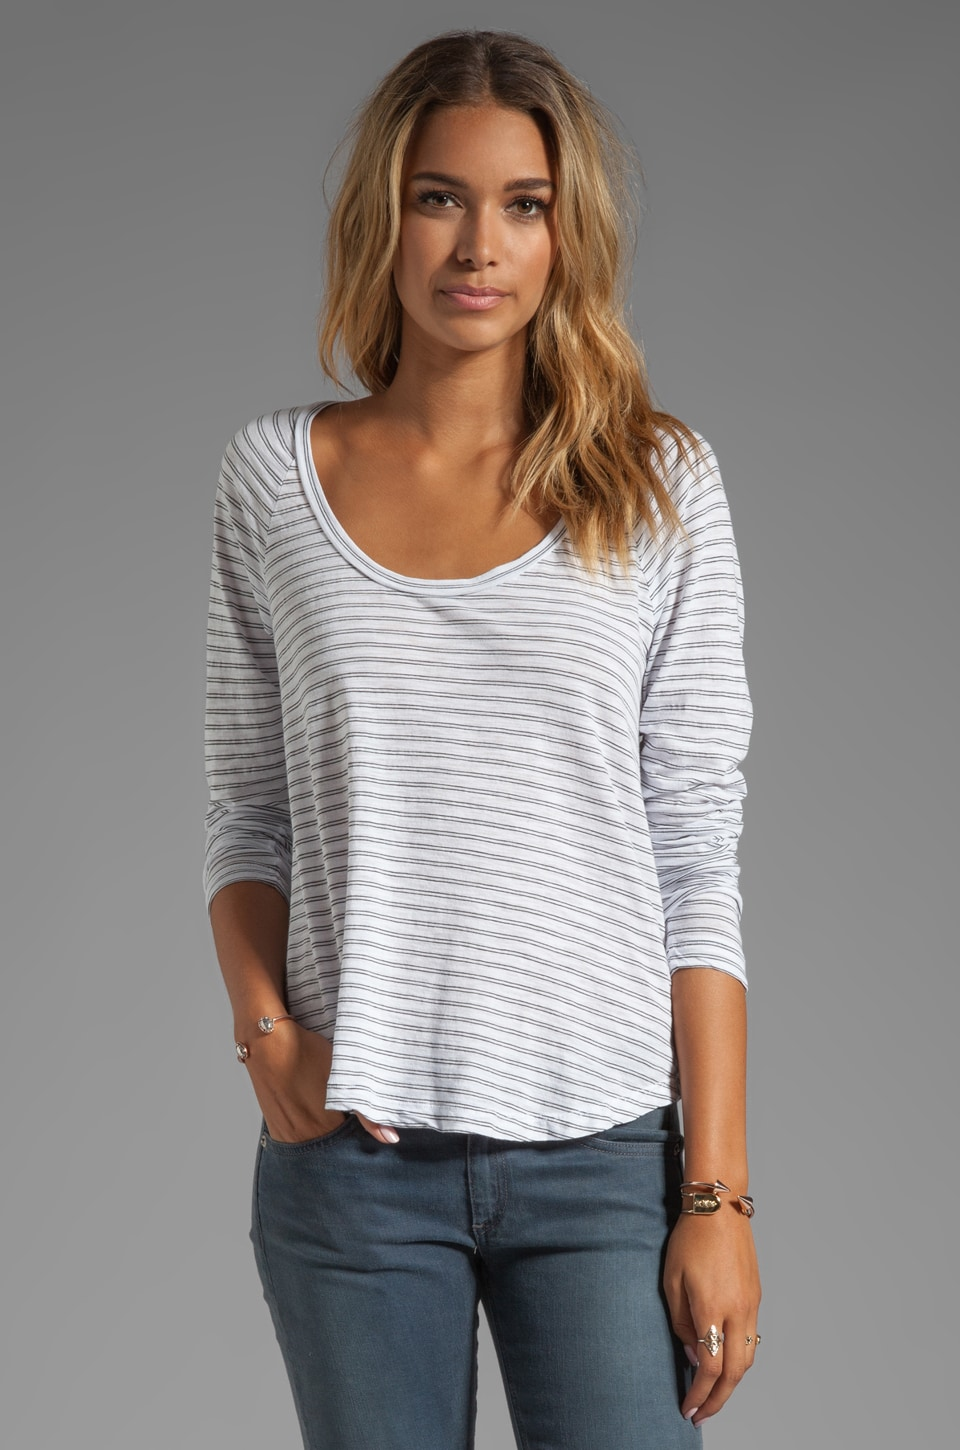 James Perse Slub Stripe Flare Tee in White